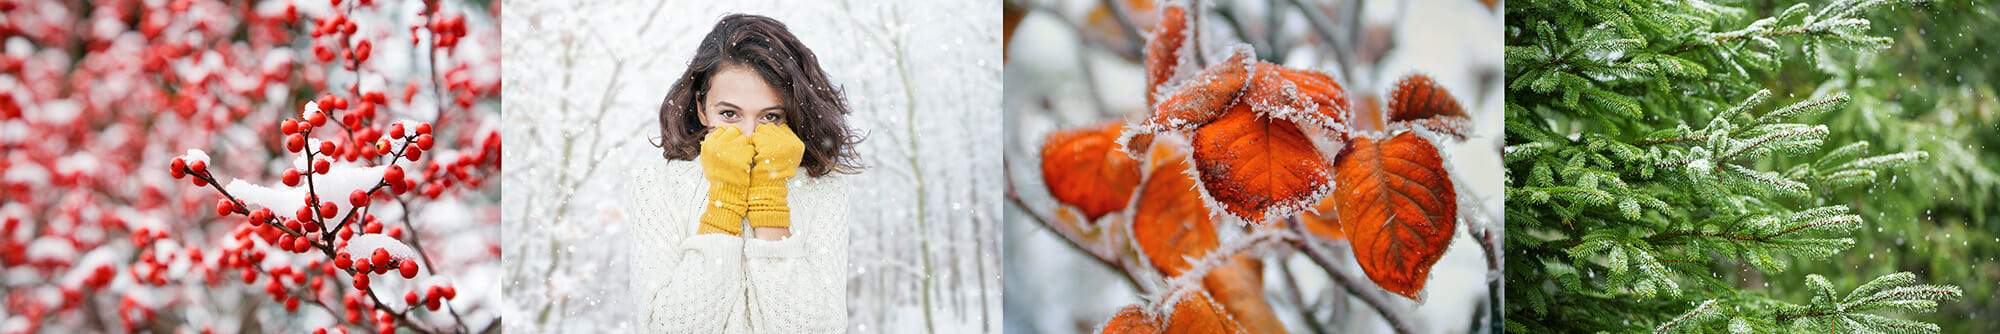 winter berries evergreen orange leaves yellow gloves cold frost snow